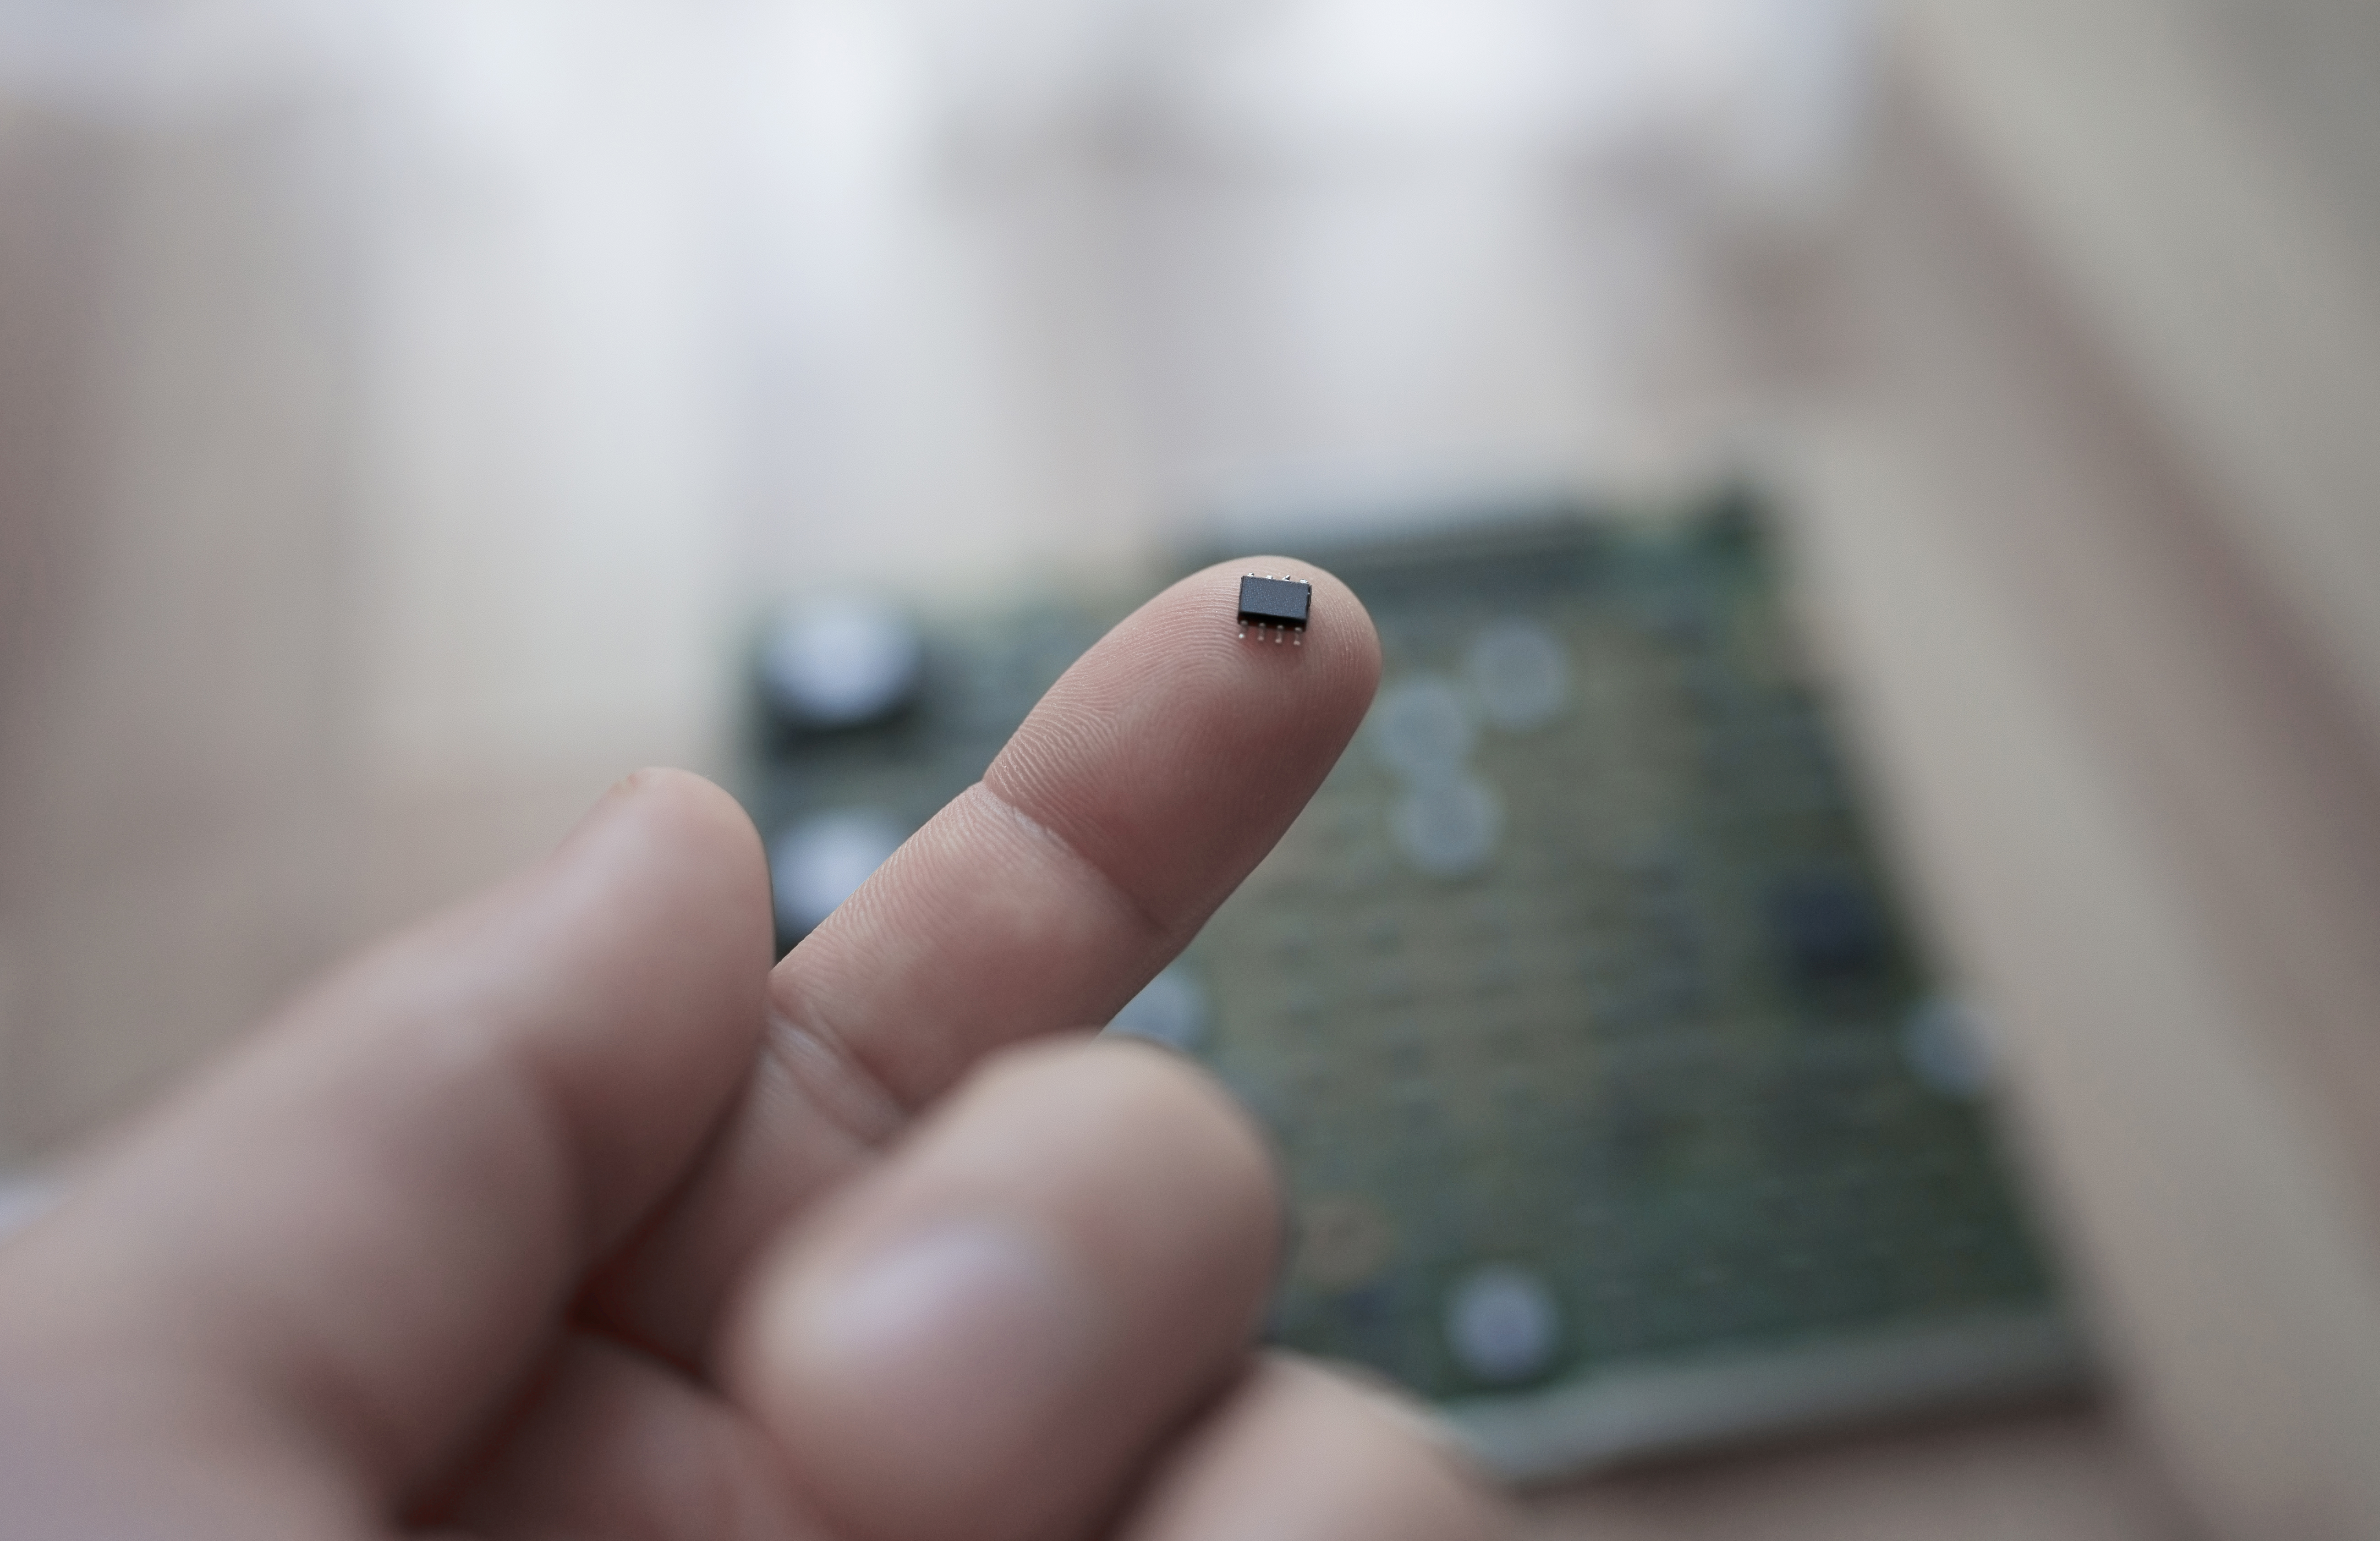 microphone MEMS devices smaller than a match head